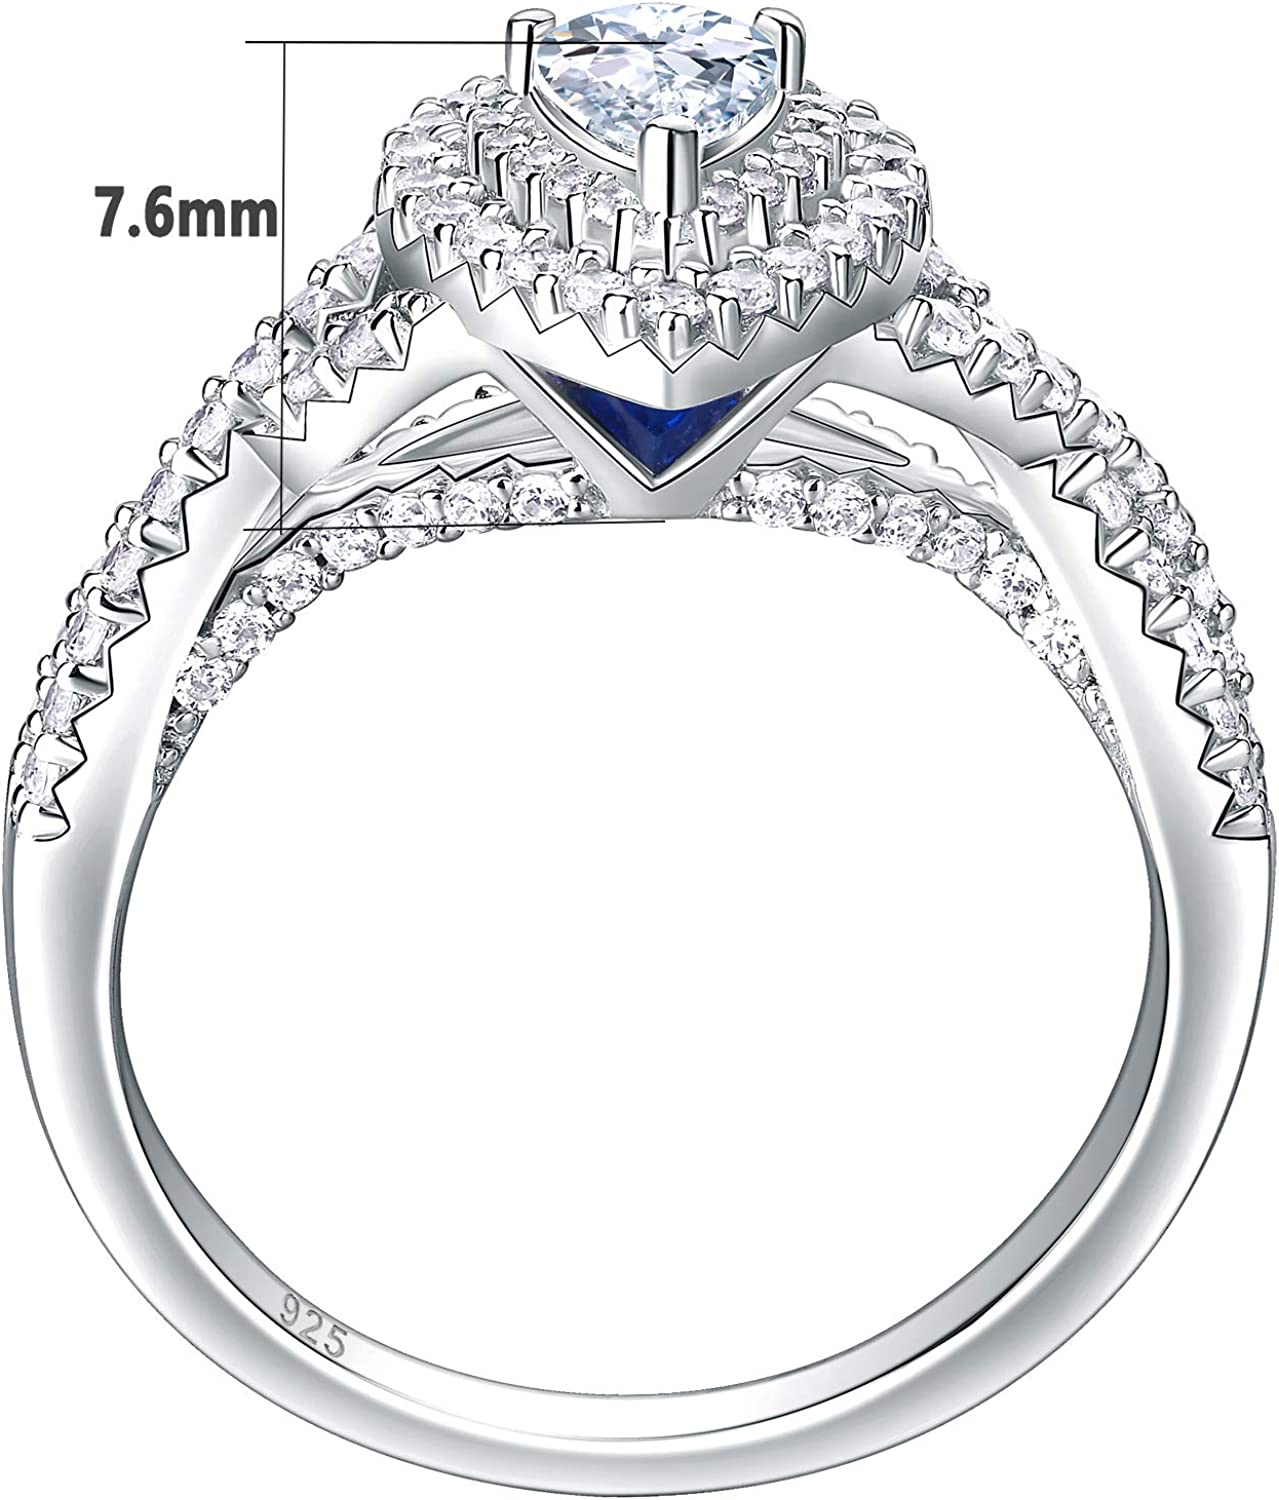 Newshe Wedding Rings for Women Engagement Ring Sets Sterling Silver Cz 1.7Ct Pear Teardrop Size 5-10